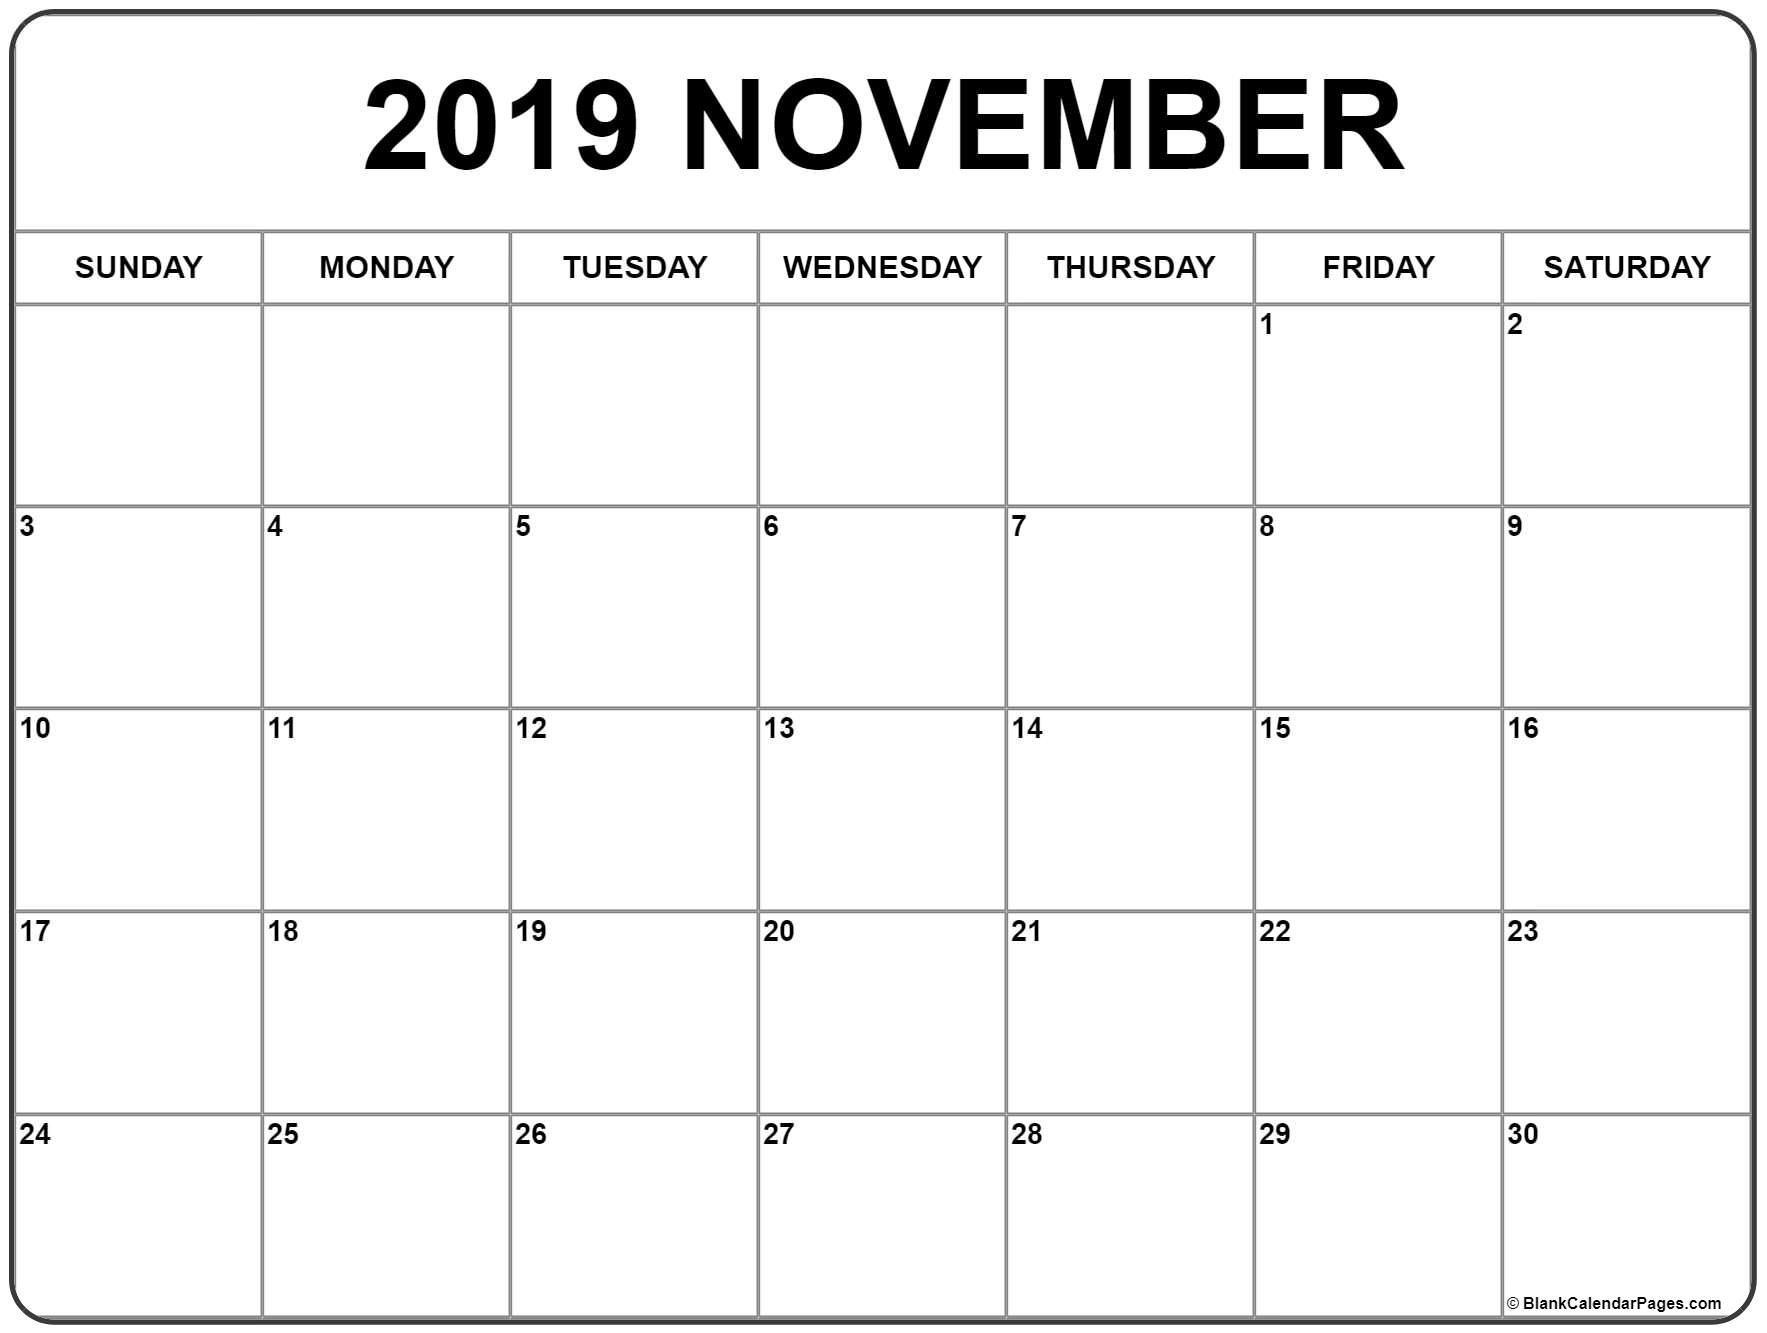 November 2020 Calendar Template  Bolan.horizonconsulting.co intended for November 2020 Calendar Excel